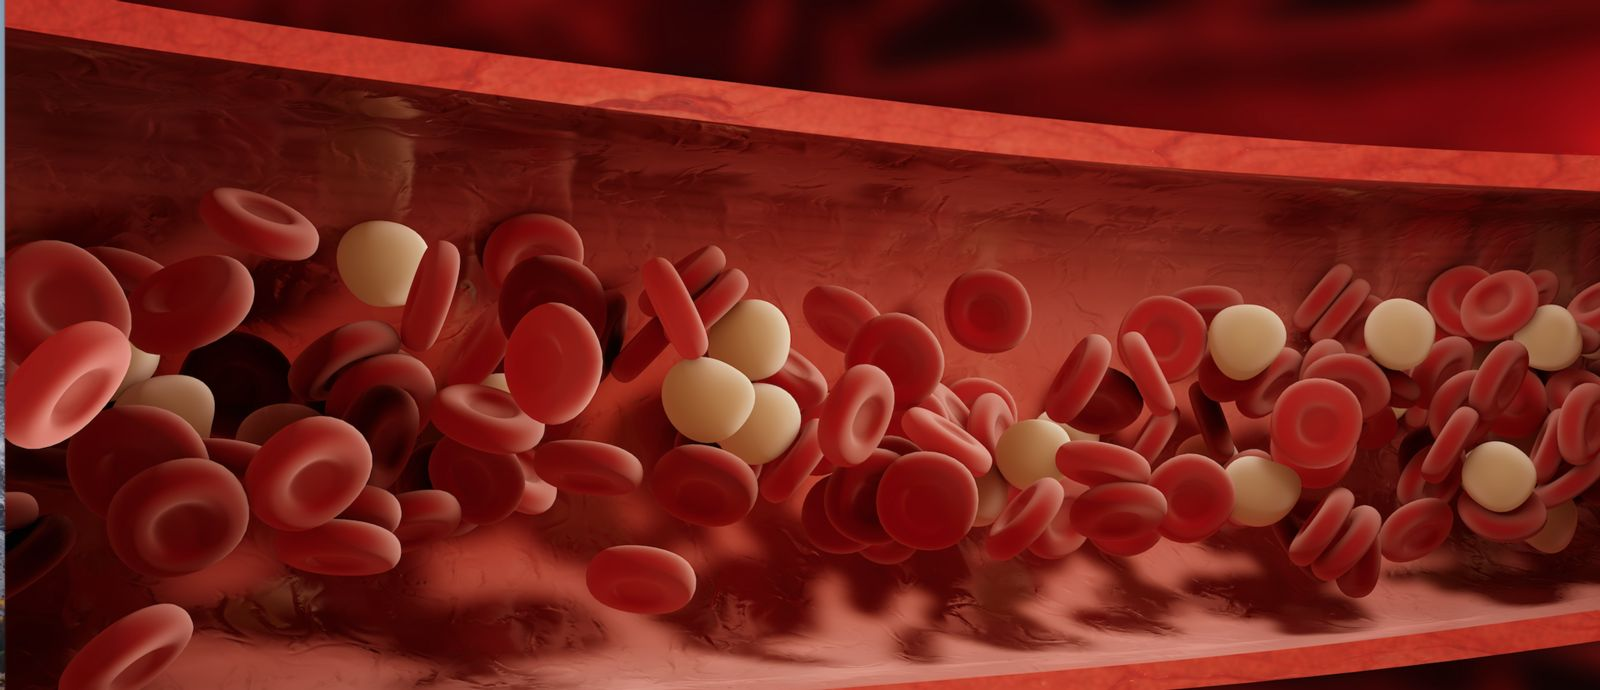 Platelets moving through the bloodstream